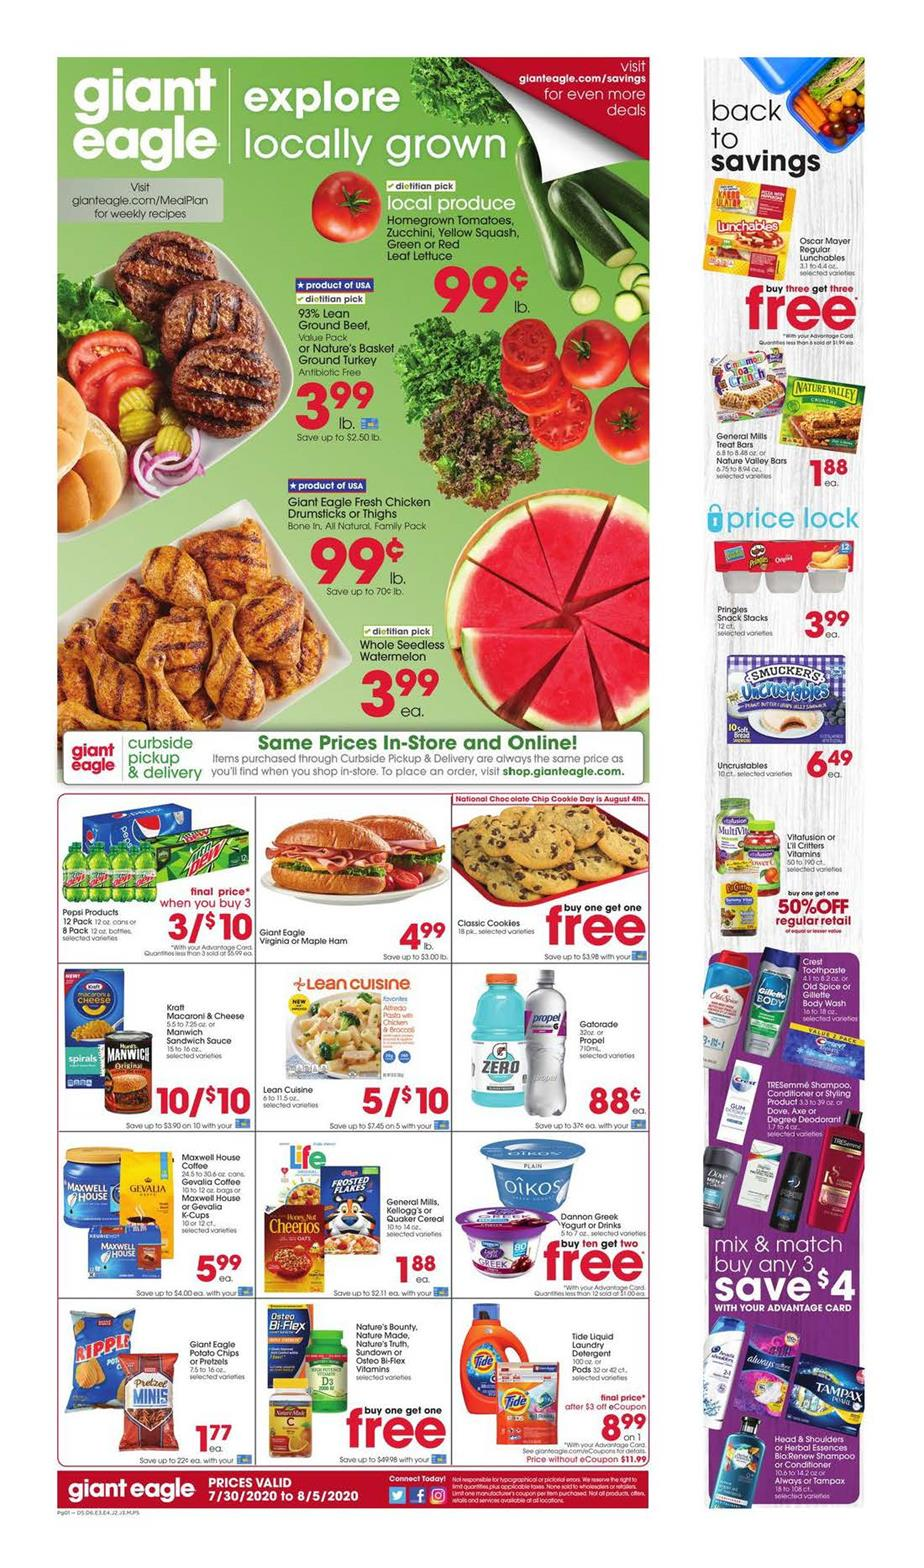 giant eagle august weekly ad valid from jul 30 aug 5 2020